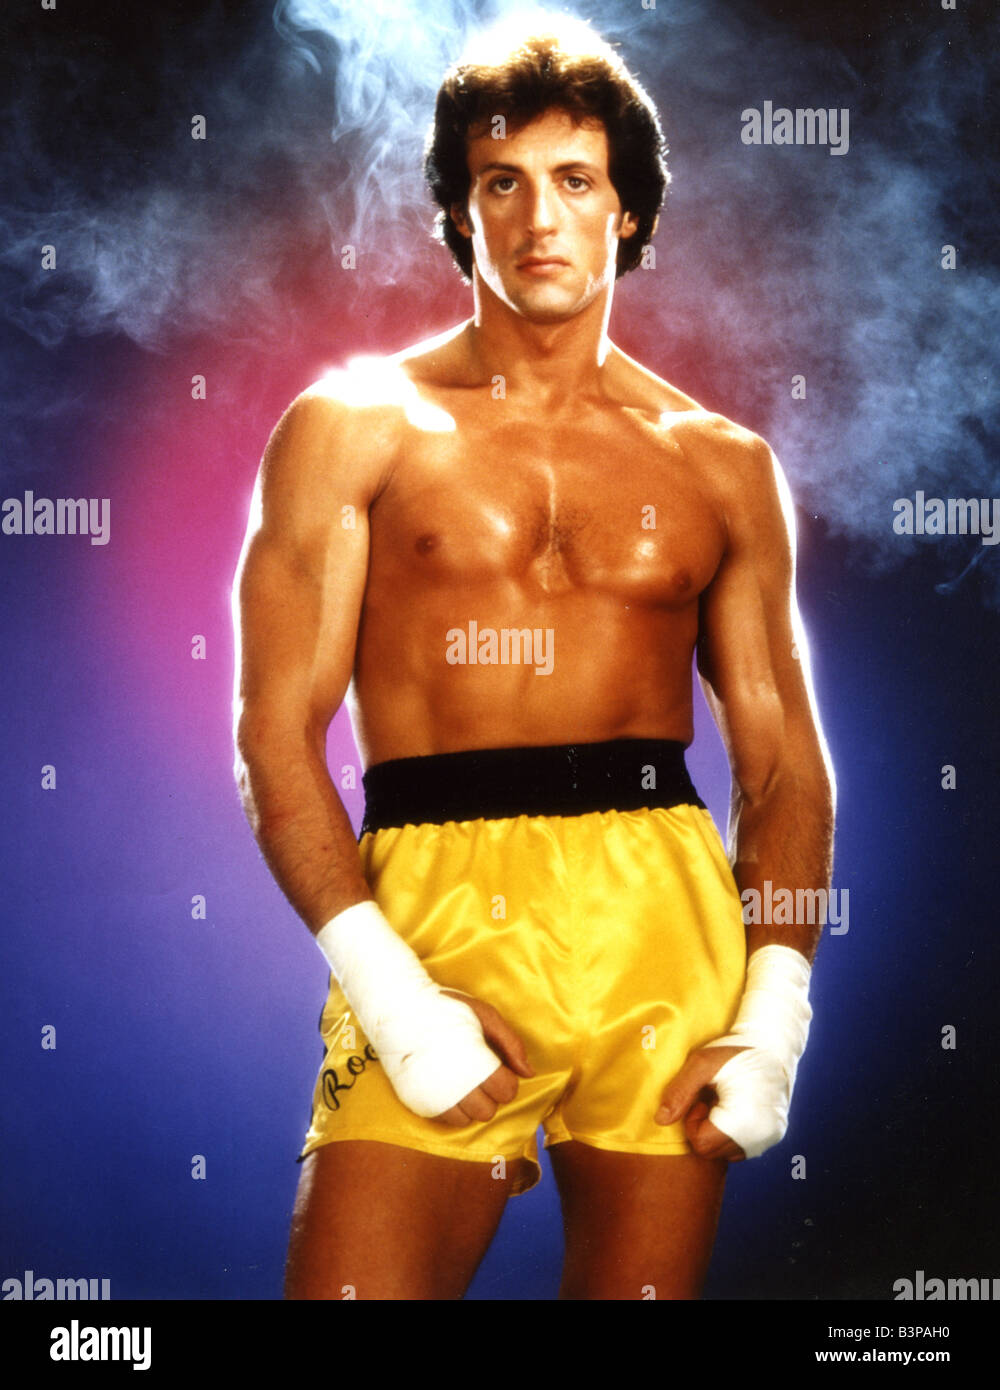 ROCKY   1976 UA film with Sylvester Stallone - Stock Image